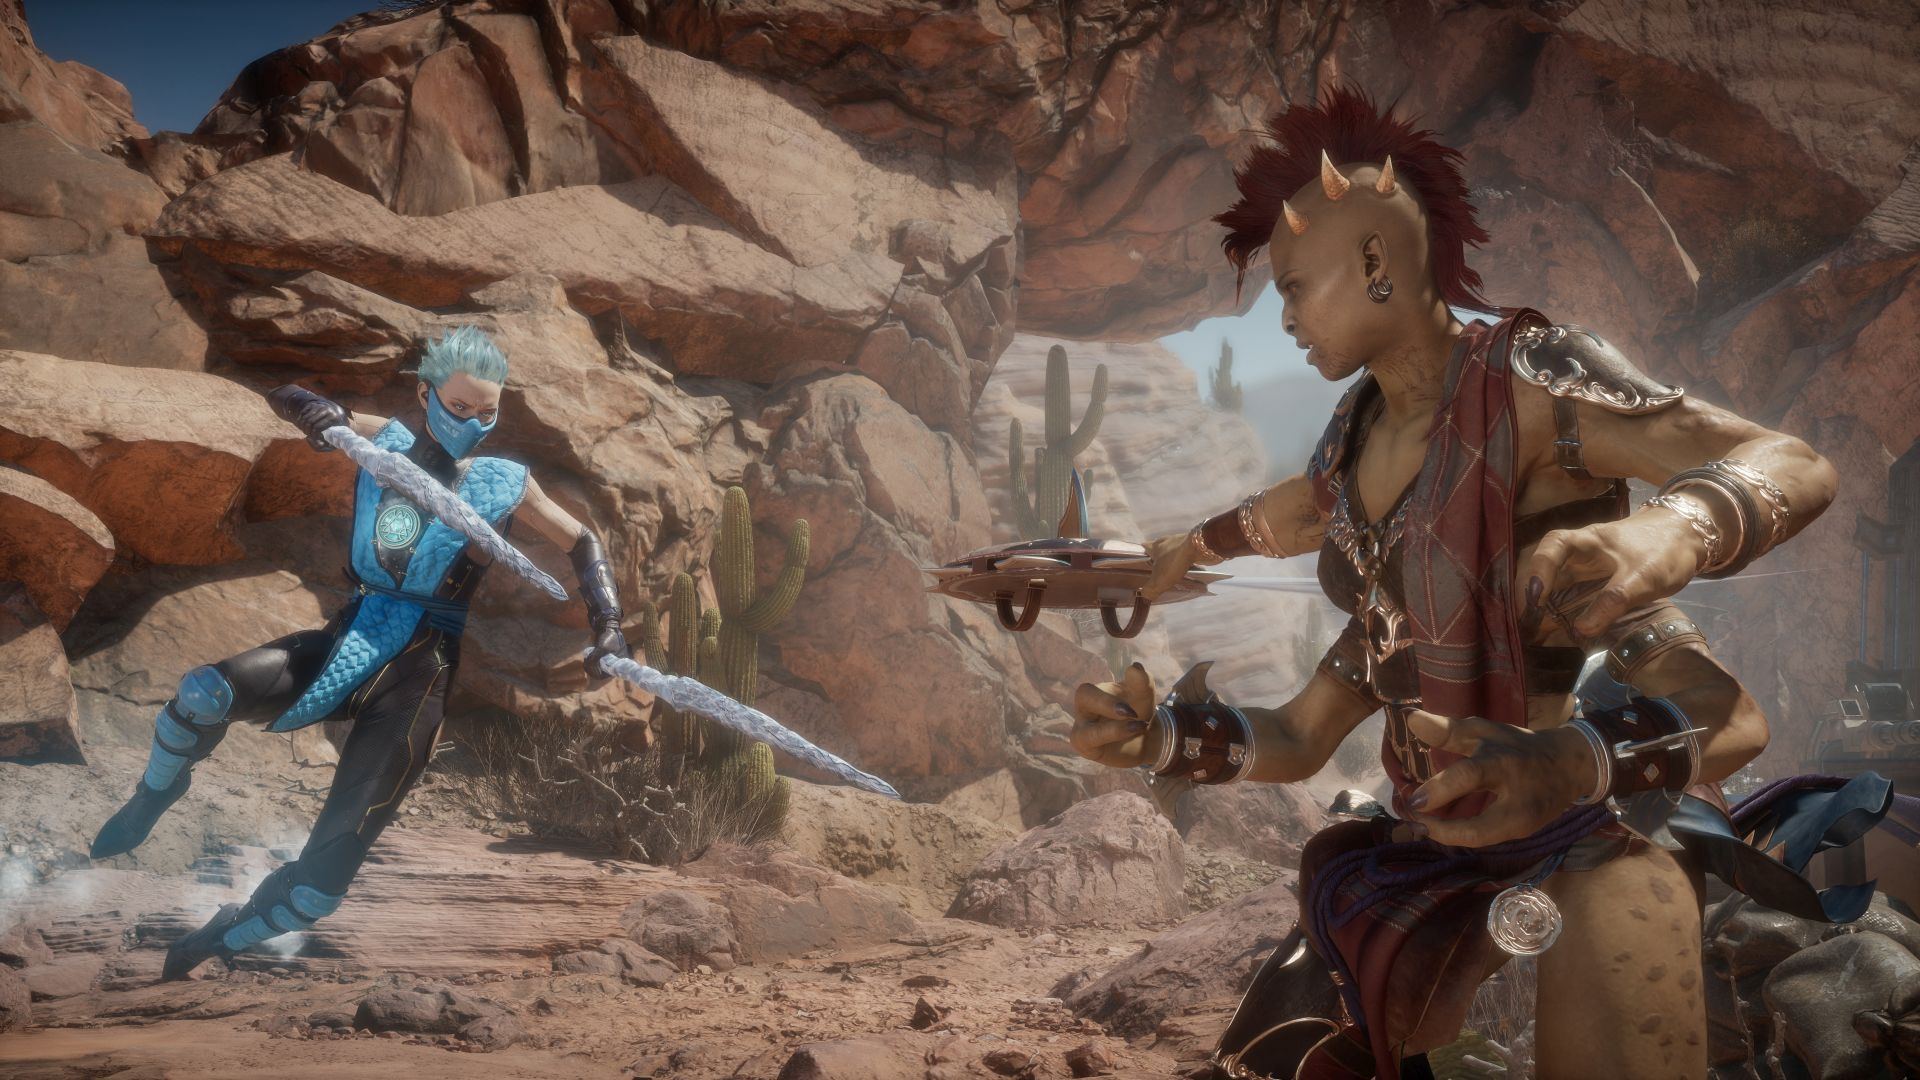 Mortal Kombat 11 Aftermath 13 Things You Need To Know